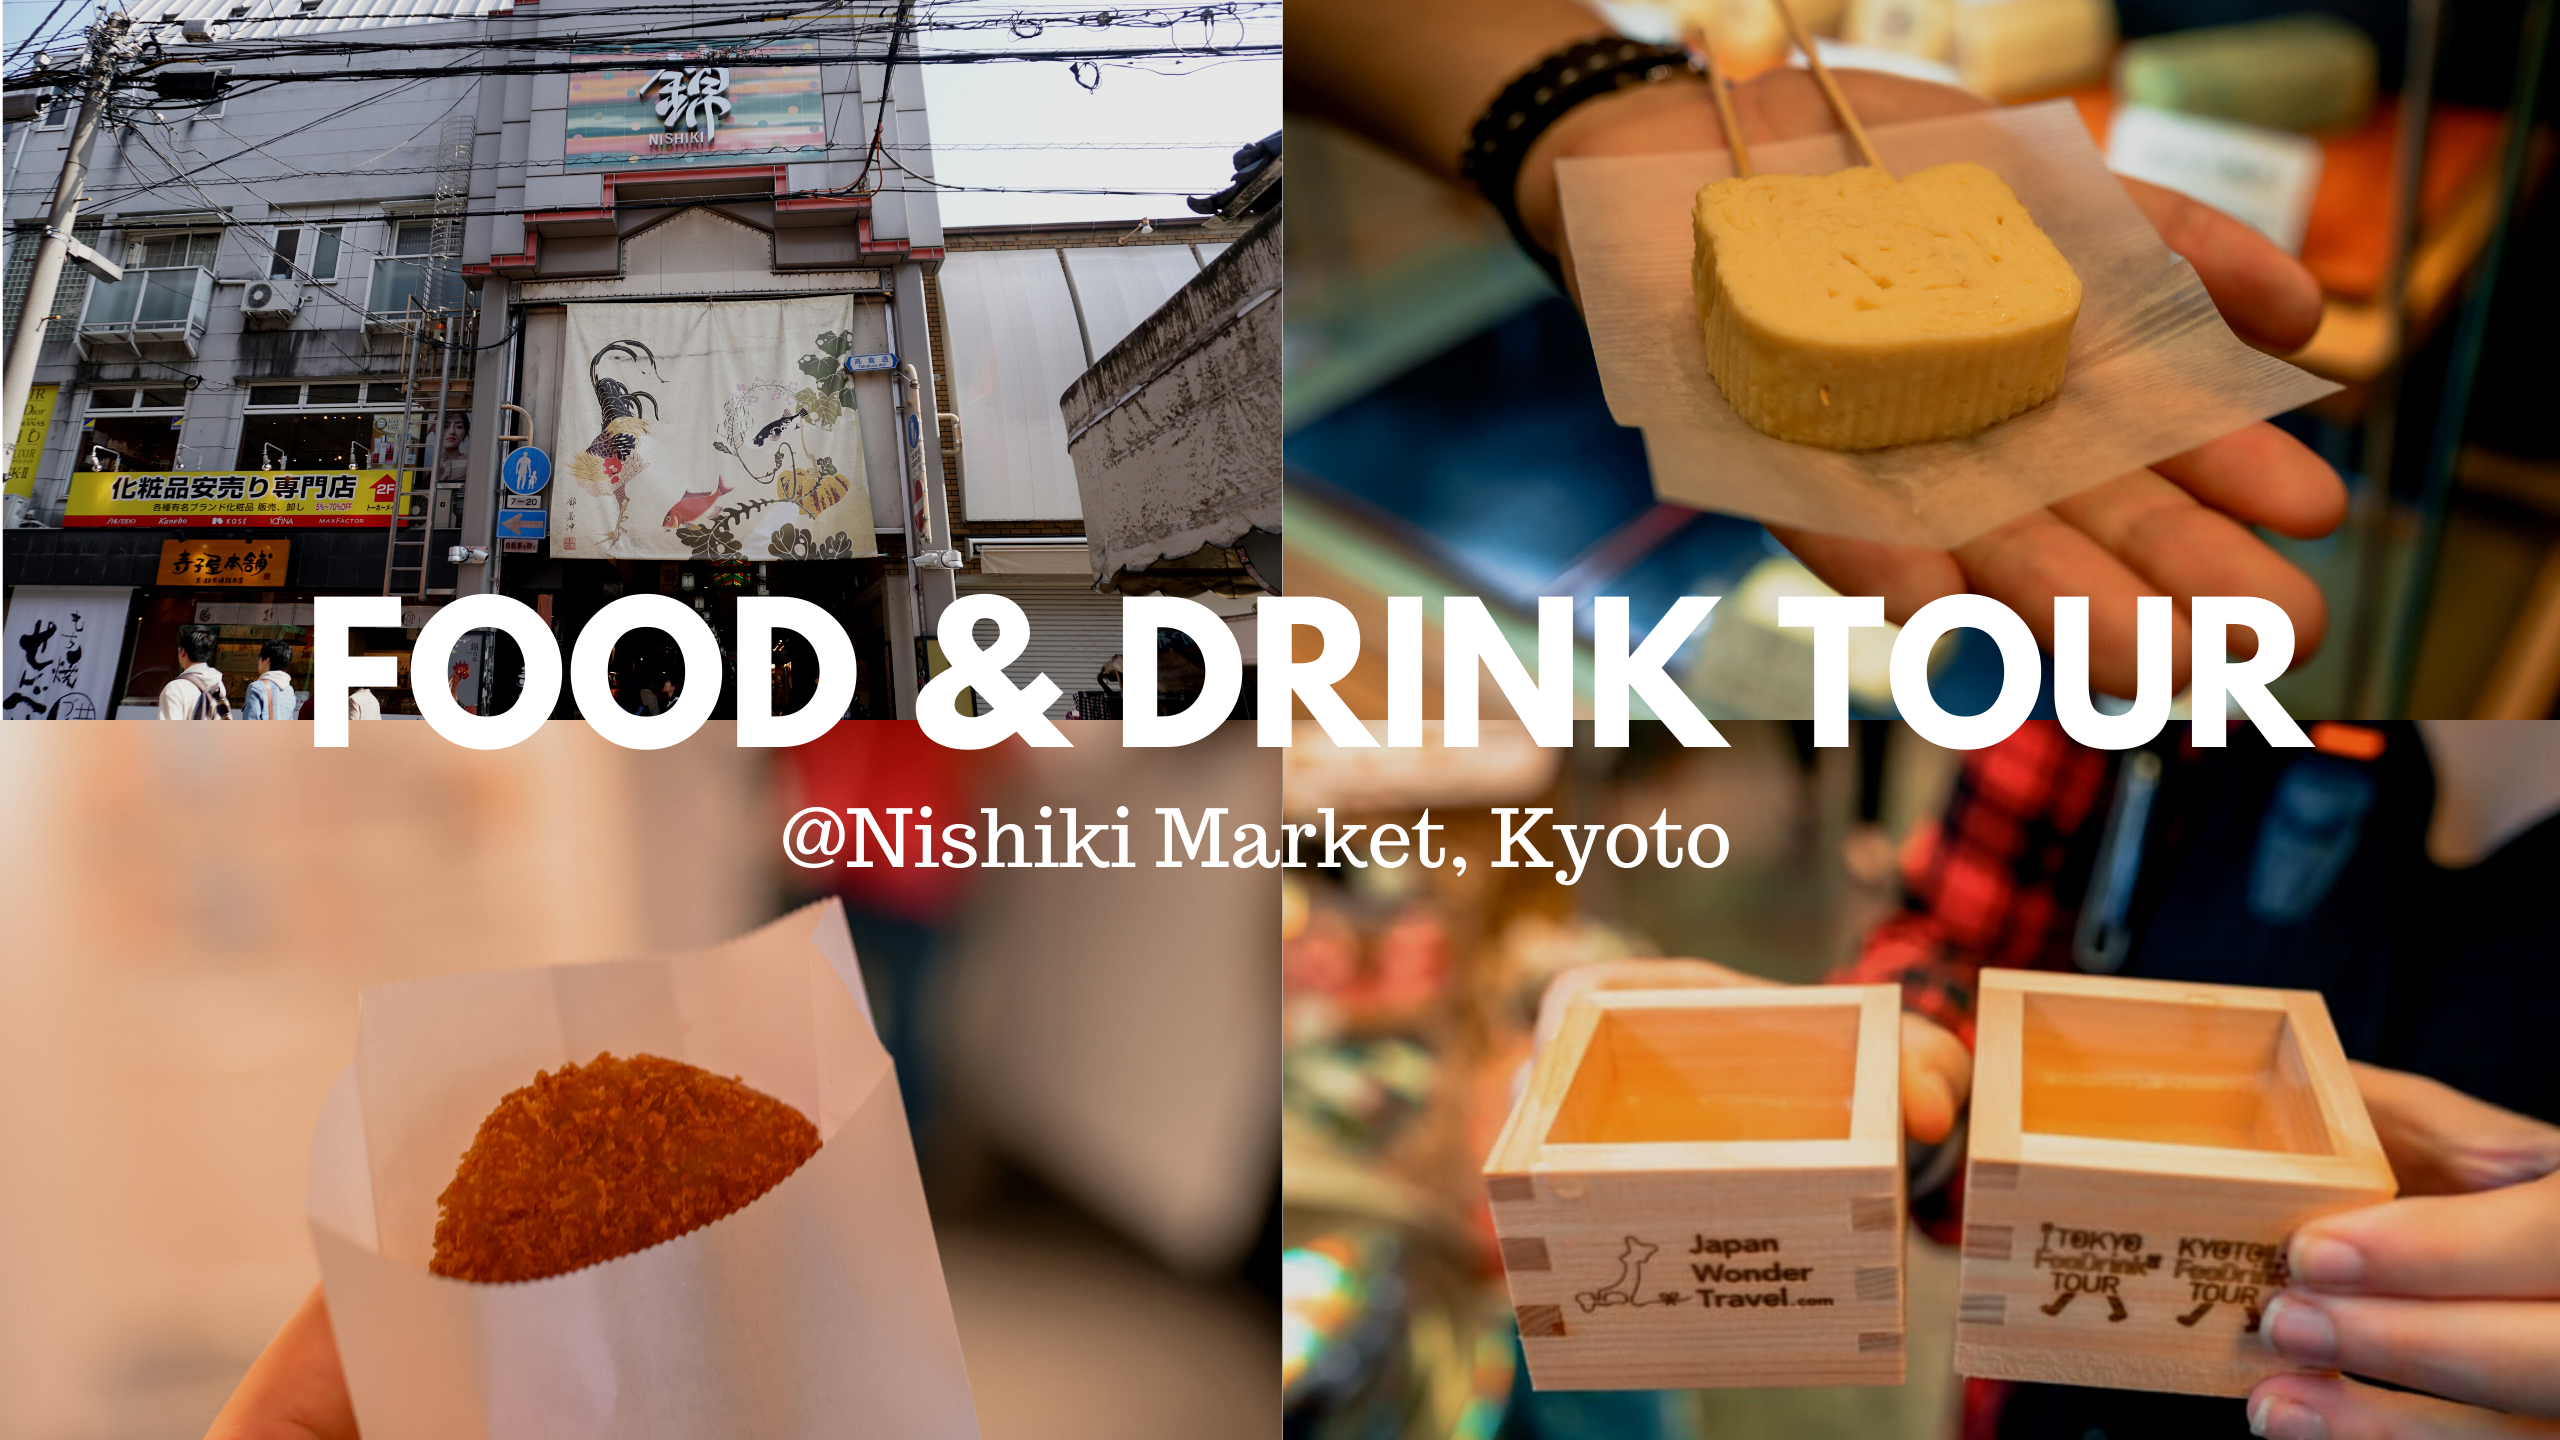 Nishiki Market: Best Food Walking Tour in Kyoto